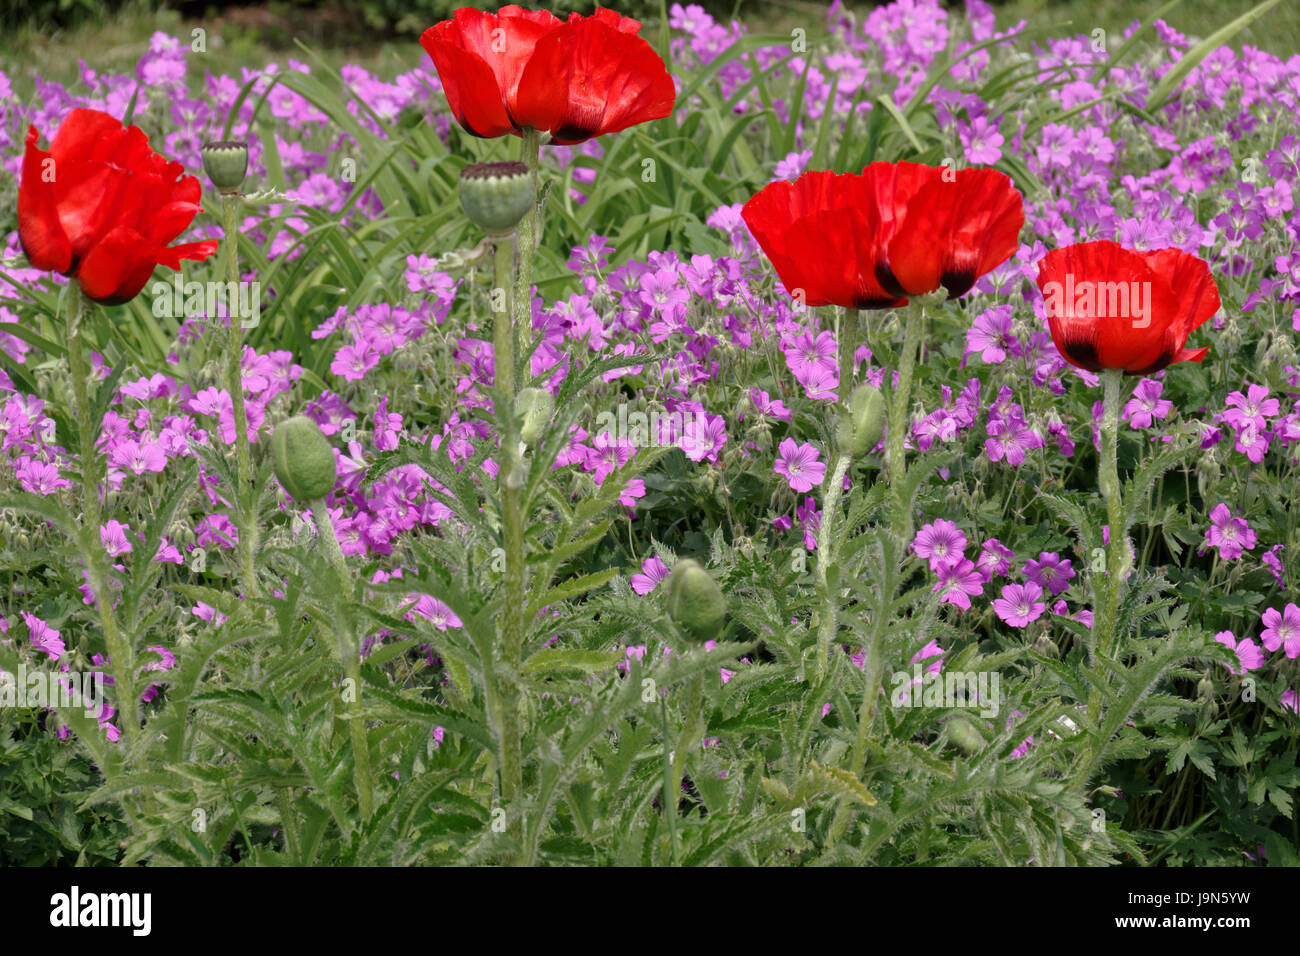 Red Poppies In Finely Purple Small Perennials Stock Photo